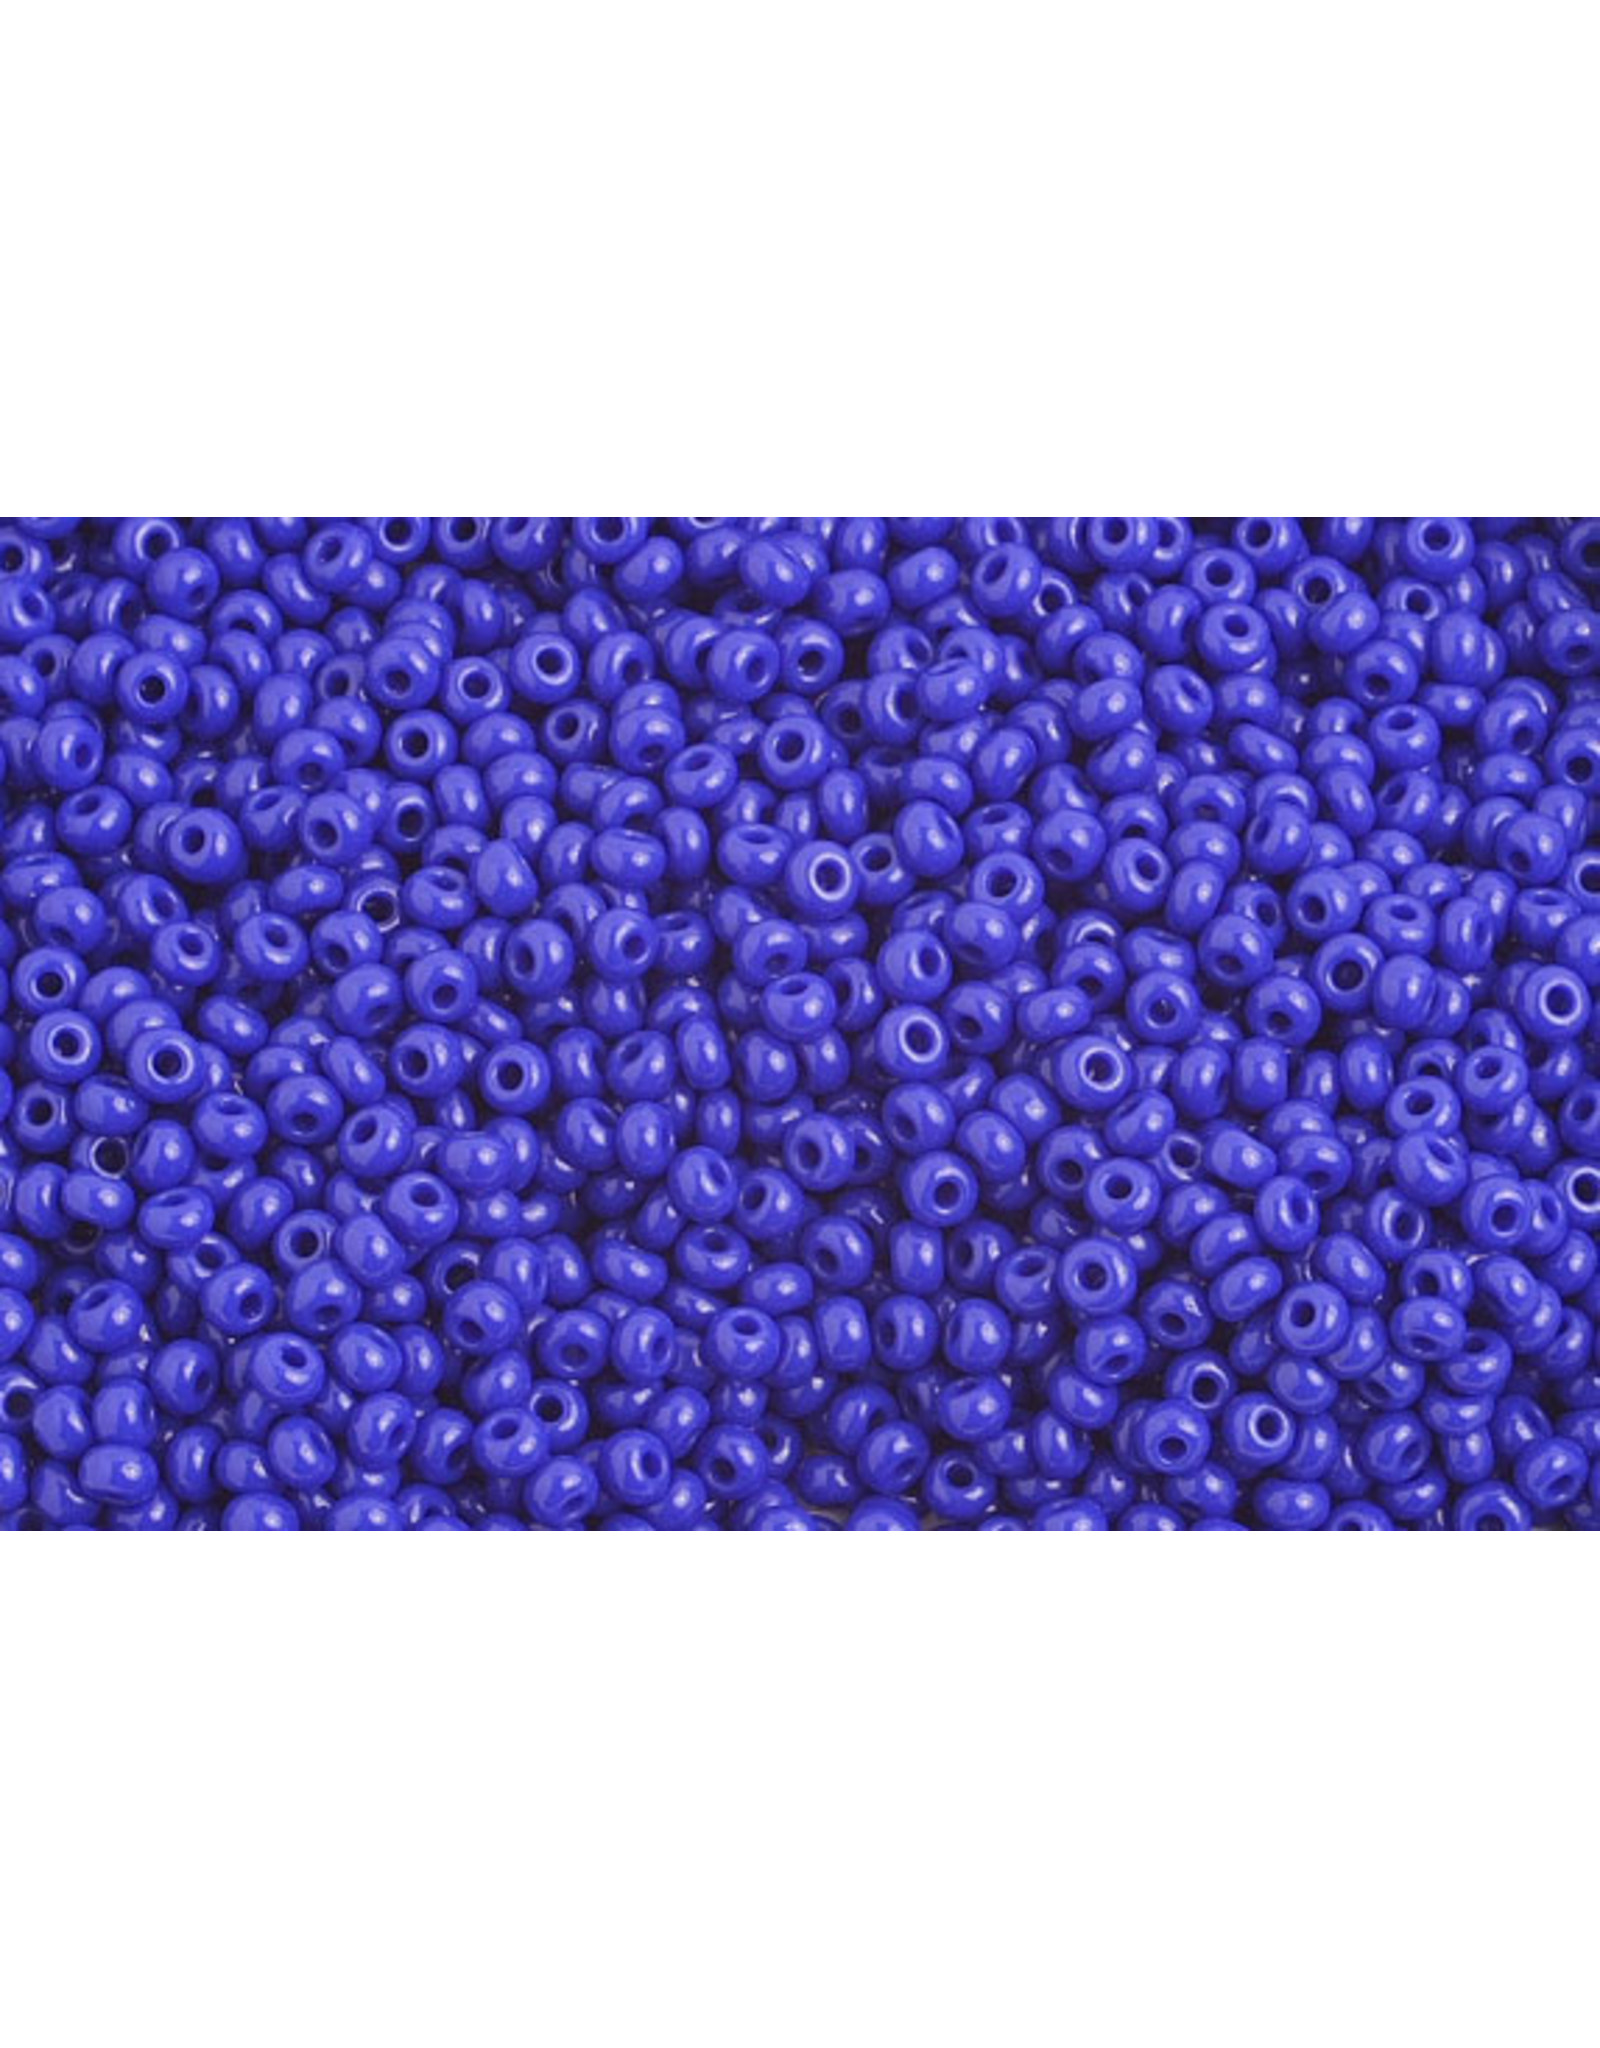 Czech 1044 10 Czech Seed 20g Opaque Royal Blue